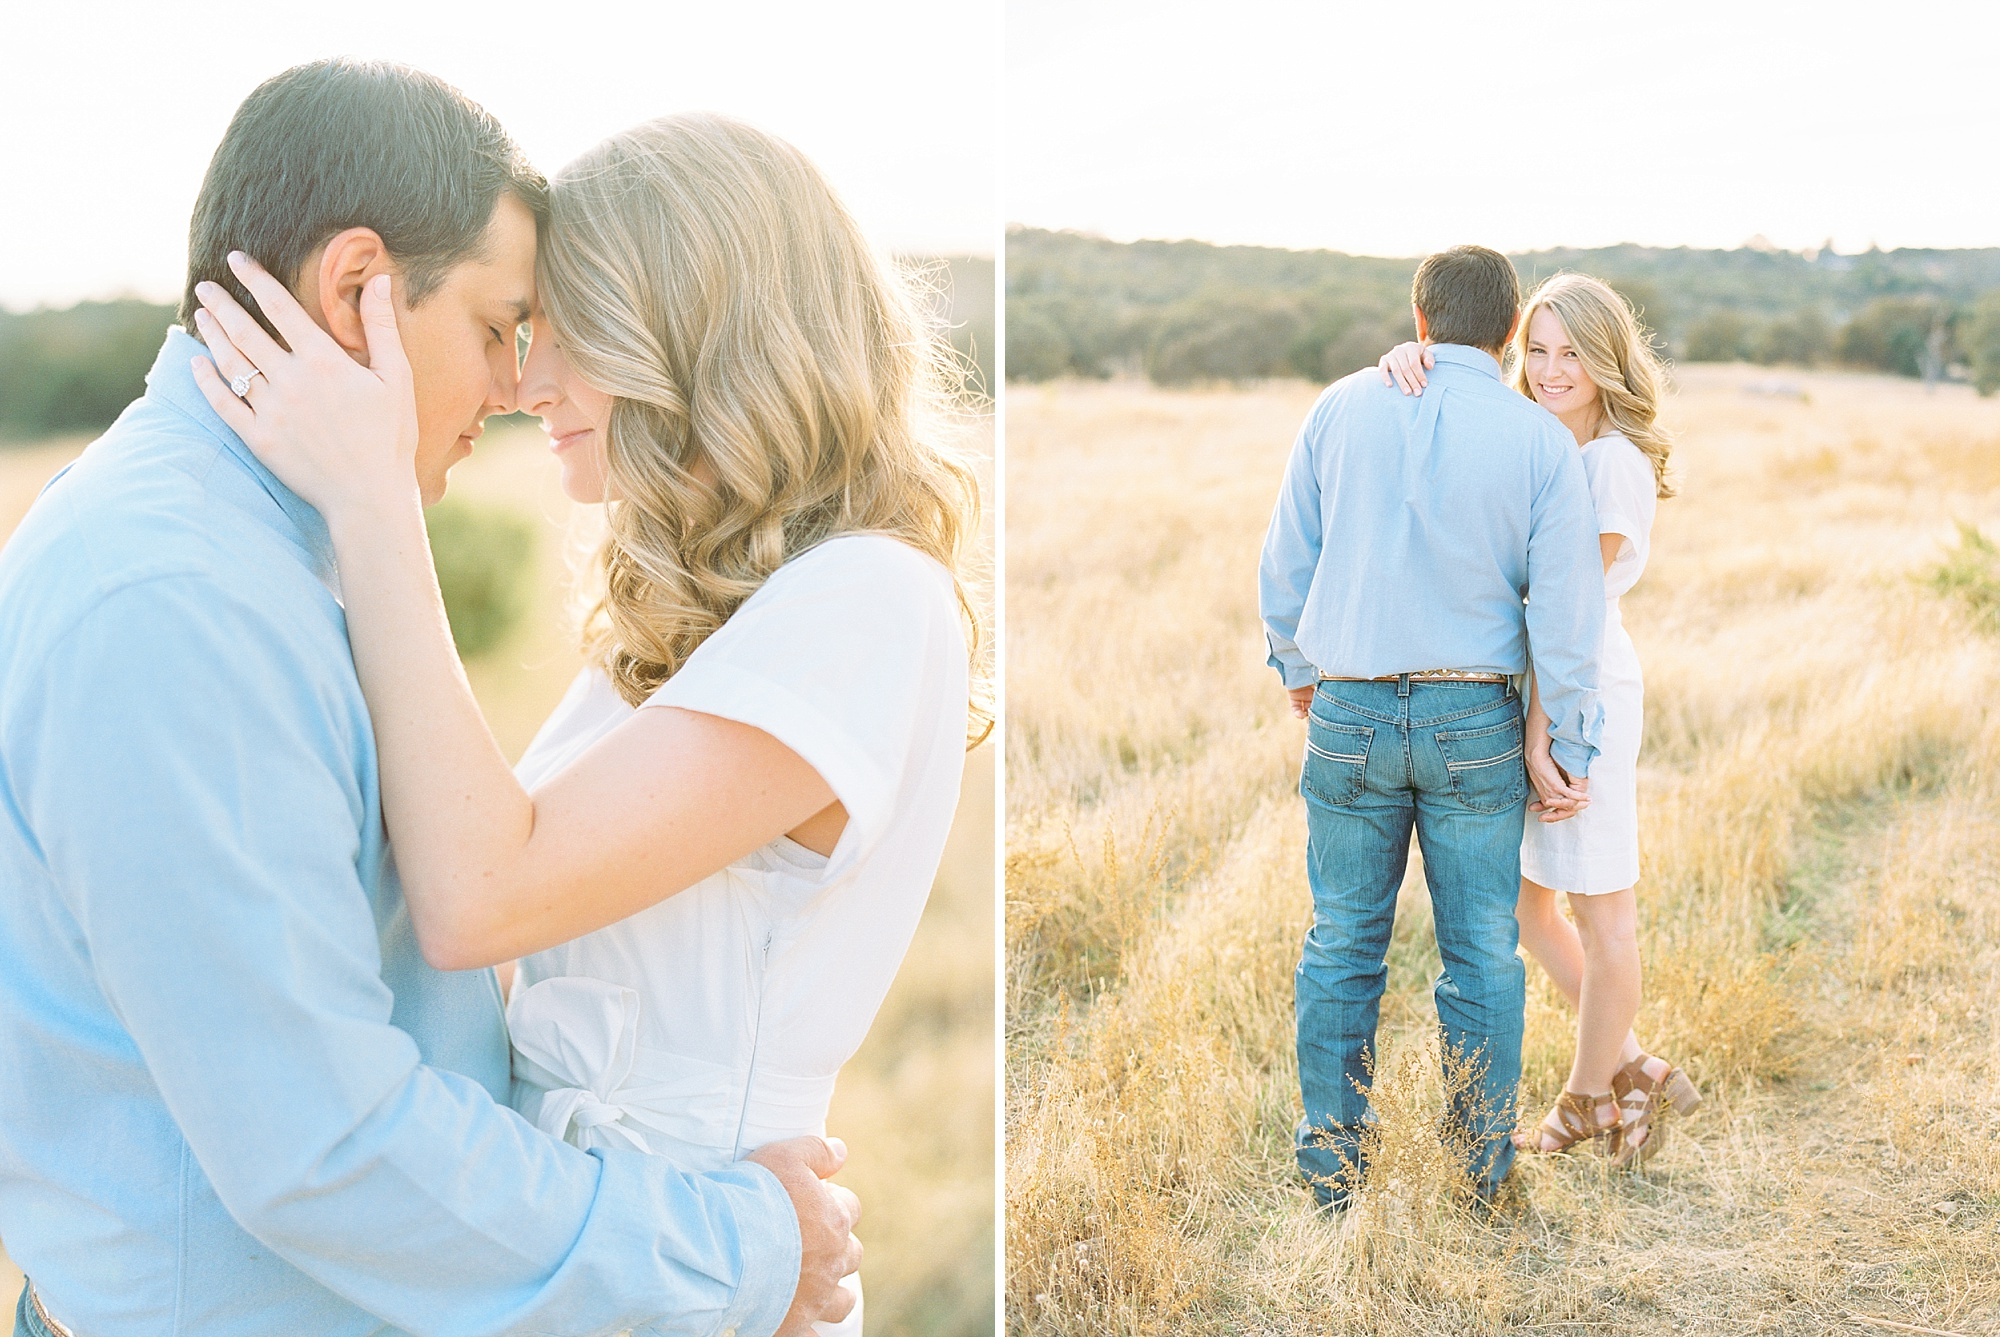 Golden Hills Engagement Session - Film Engagement Session - Ashley Baumgartner - Sacramento Wedding Photography - Stone Barn Ranch Wedding Couple_0002.jpg